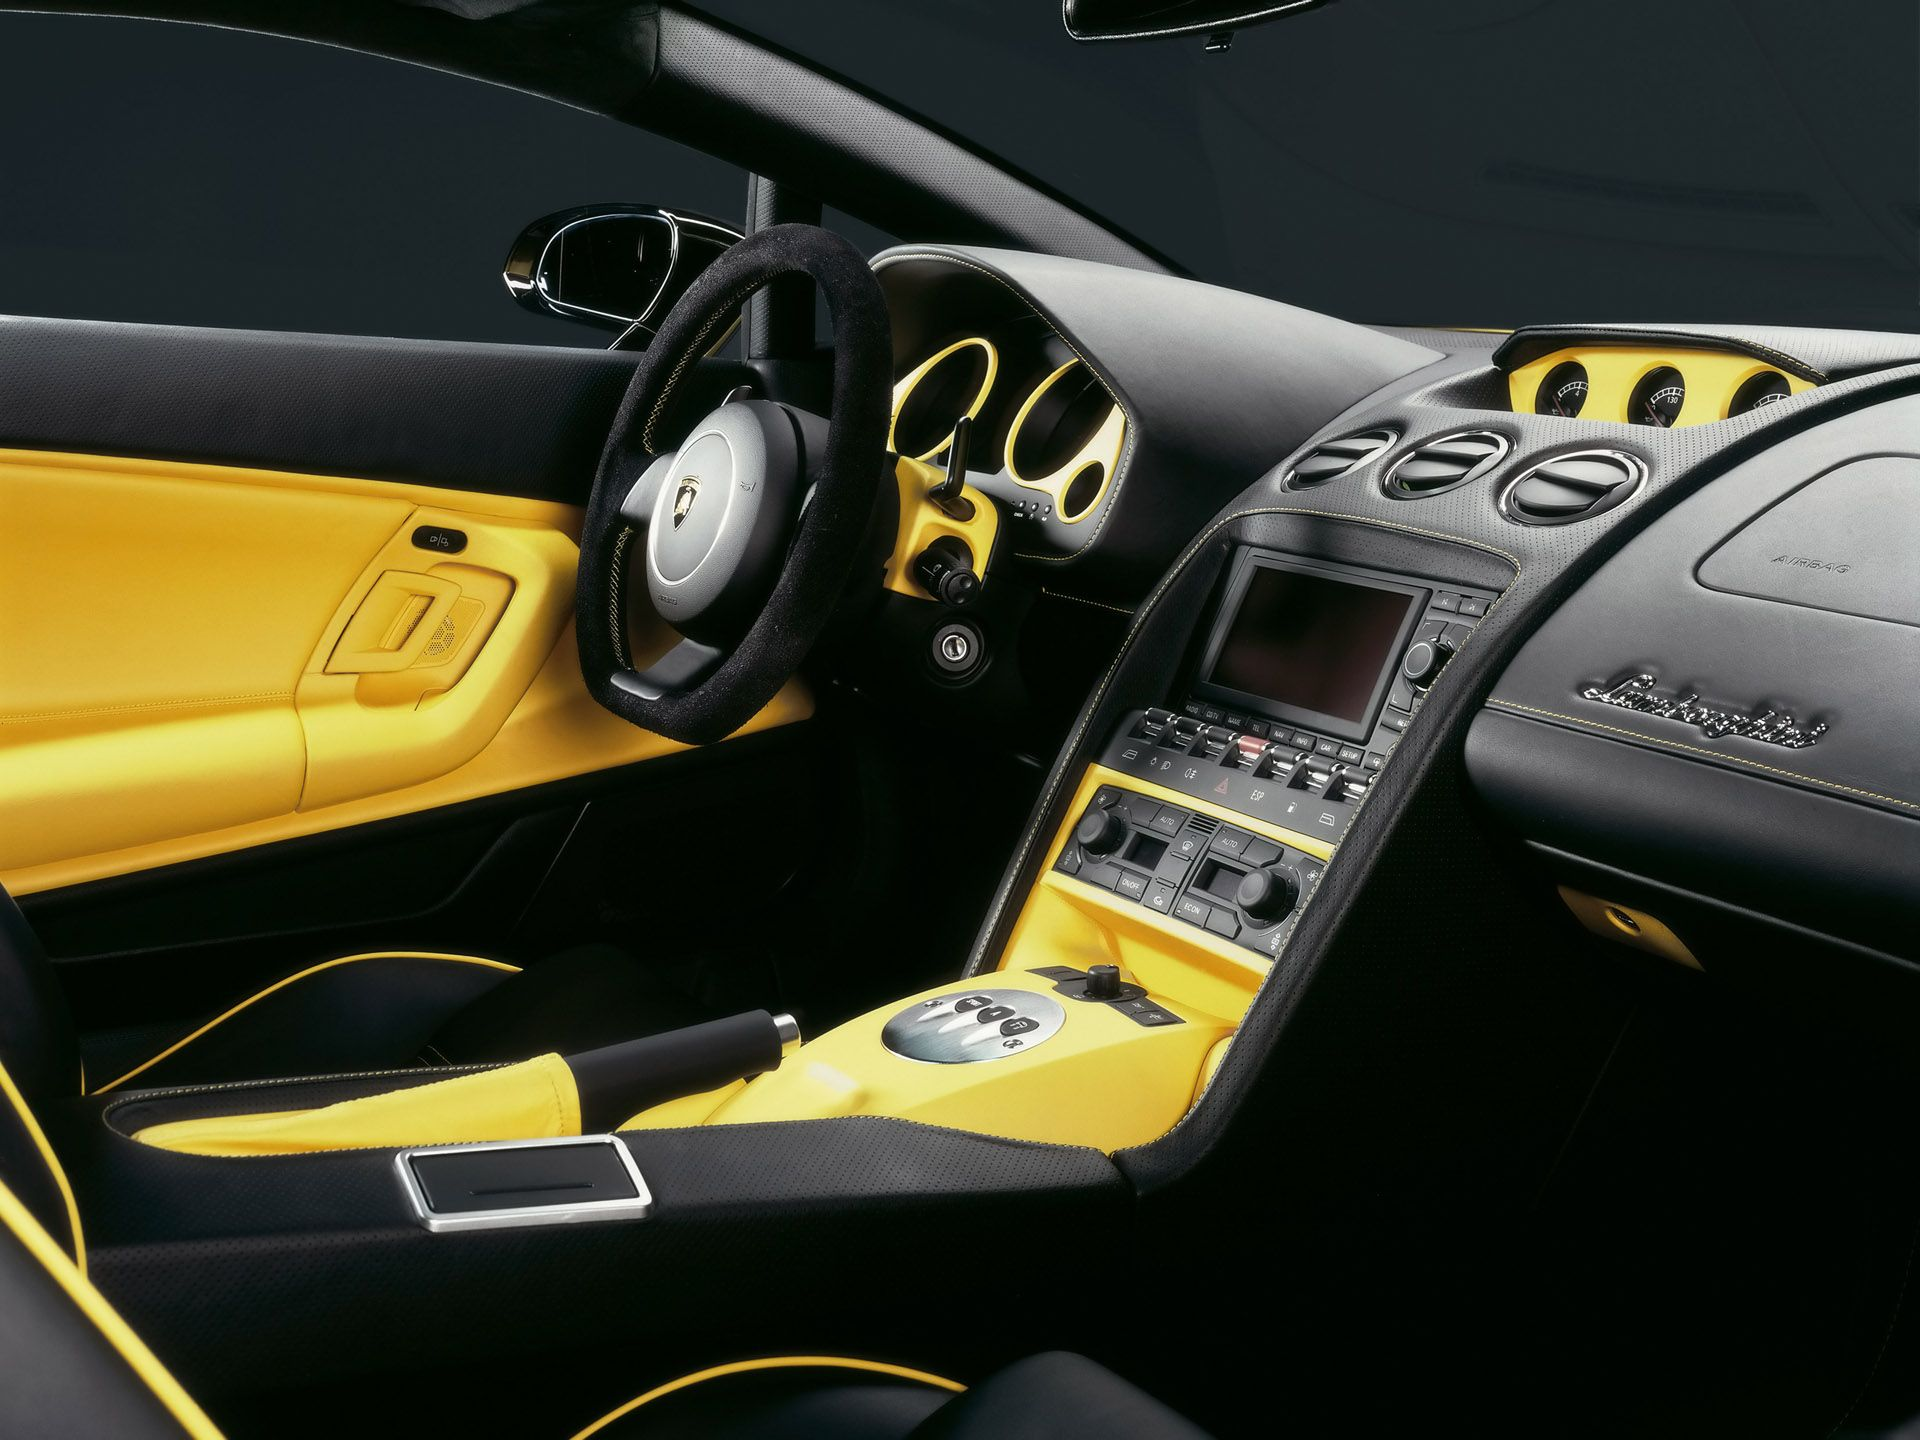 Awesome Lamborghini Gallardo Interior Picture Best Hd Car